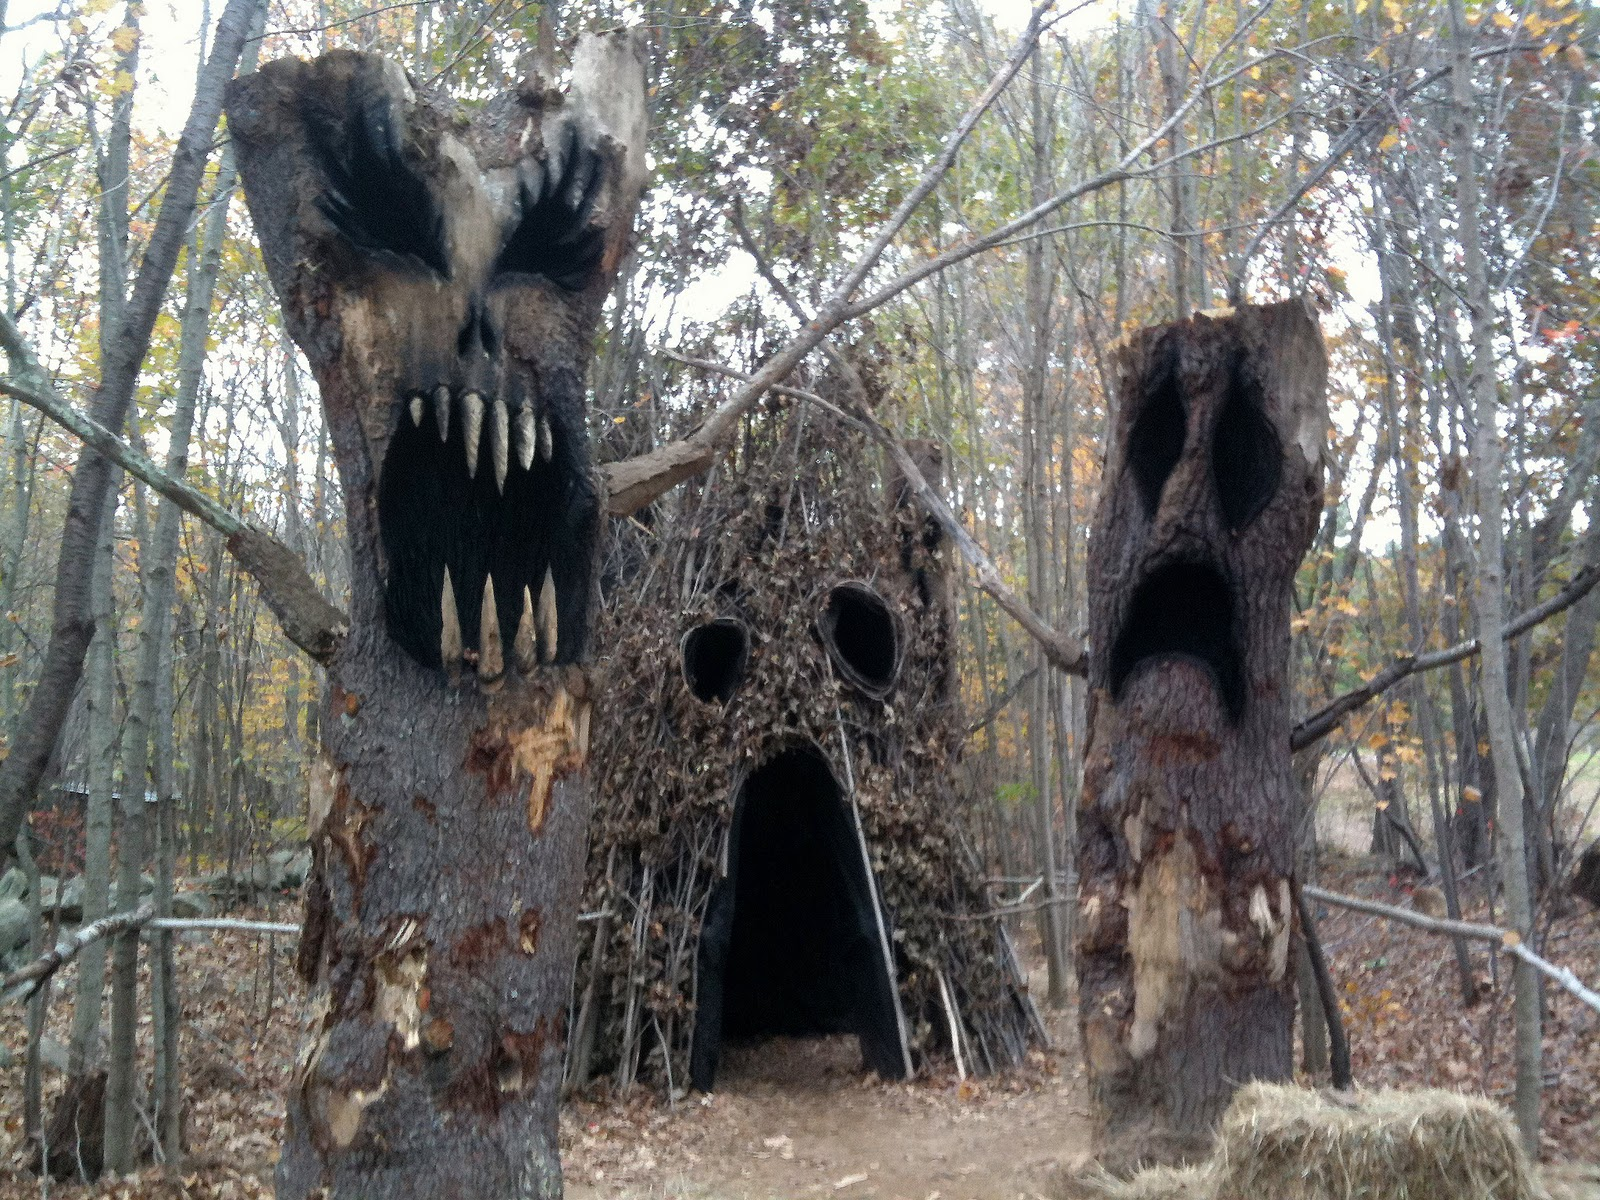 Backyard Haunted Forest Ideas : This weekend Mrs Bones and I made the pilgrimage to Haunted Overload